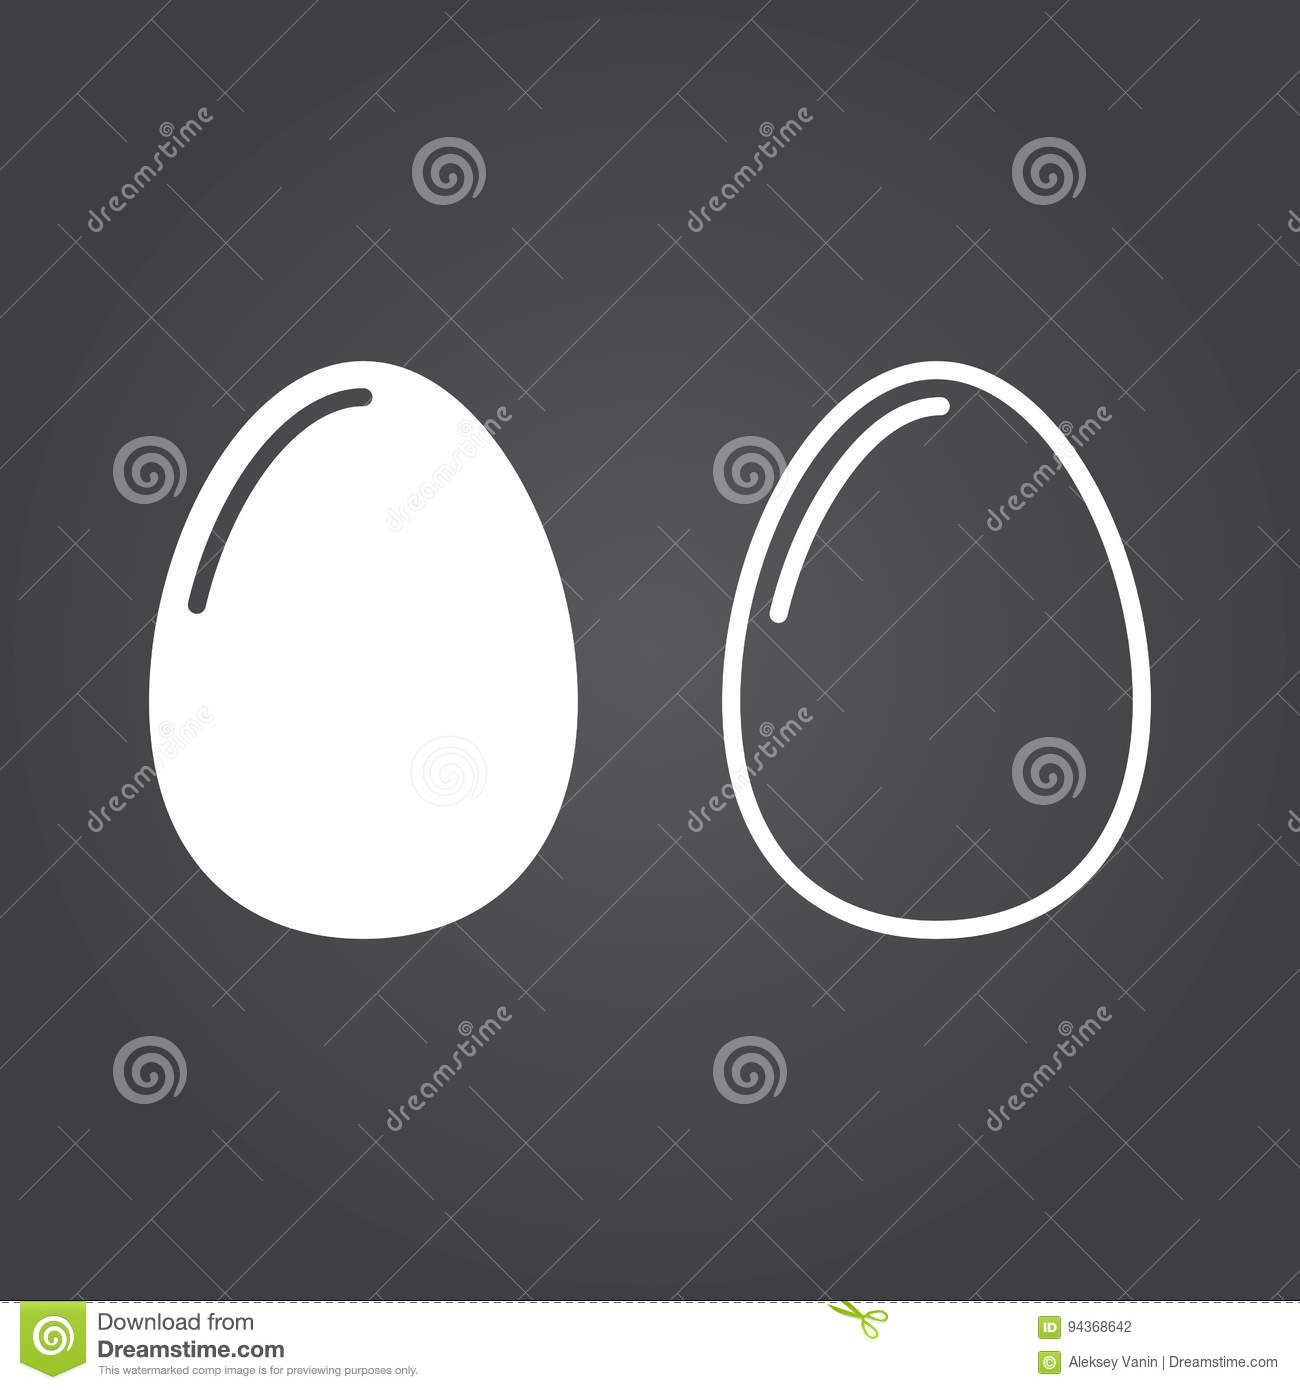 Egg Icon  Solid And Outline Versions  White Icons On A Dark